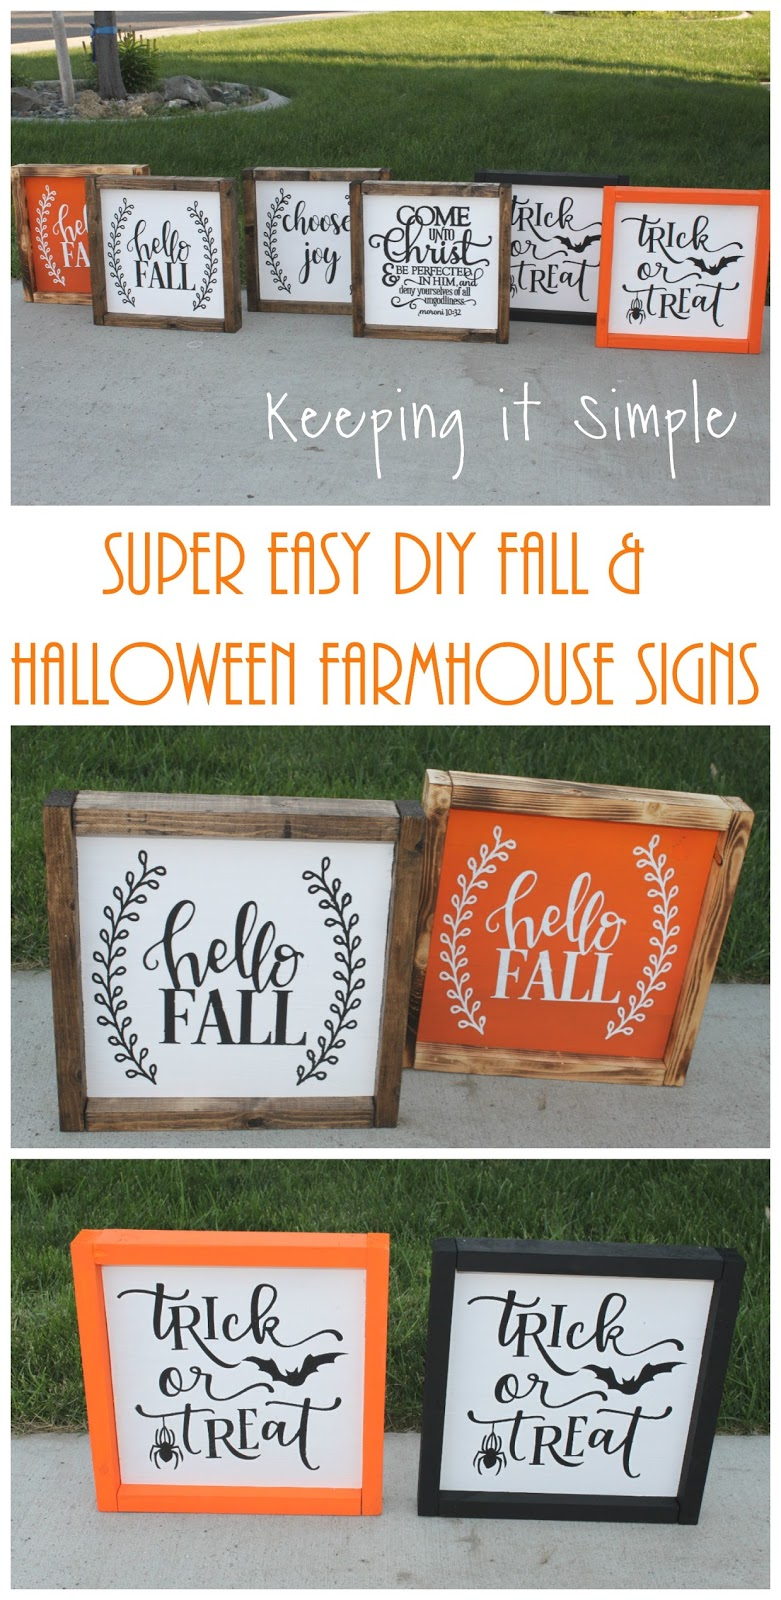 3 Easy Diy Storage Ideas For Small Kitchen: Super Easy DIY Fall And Halloween Farmhouse Signs